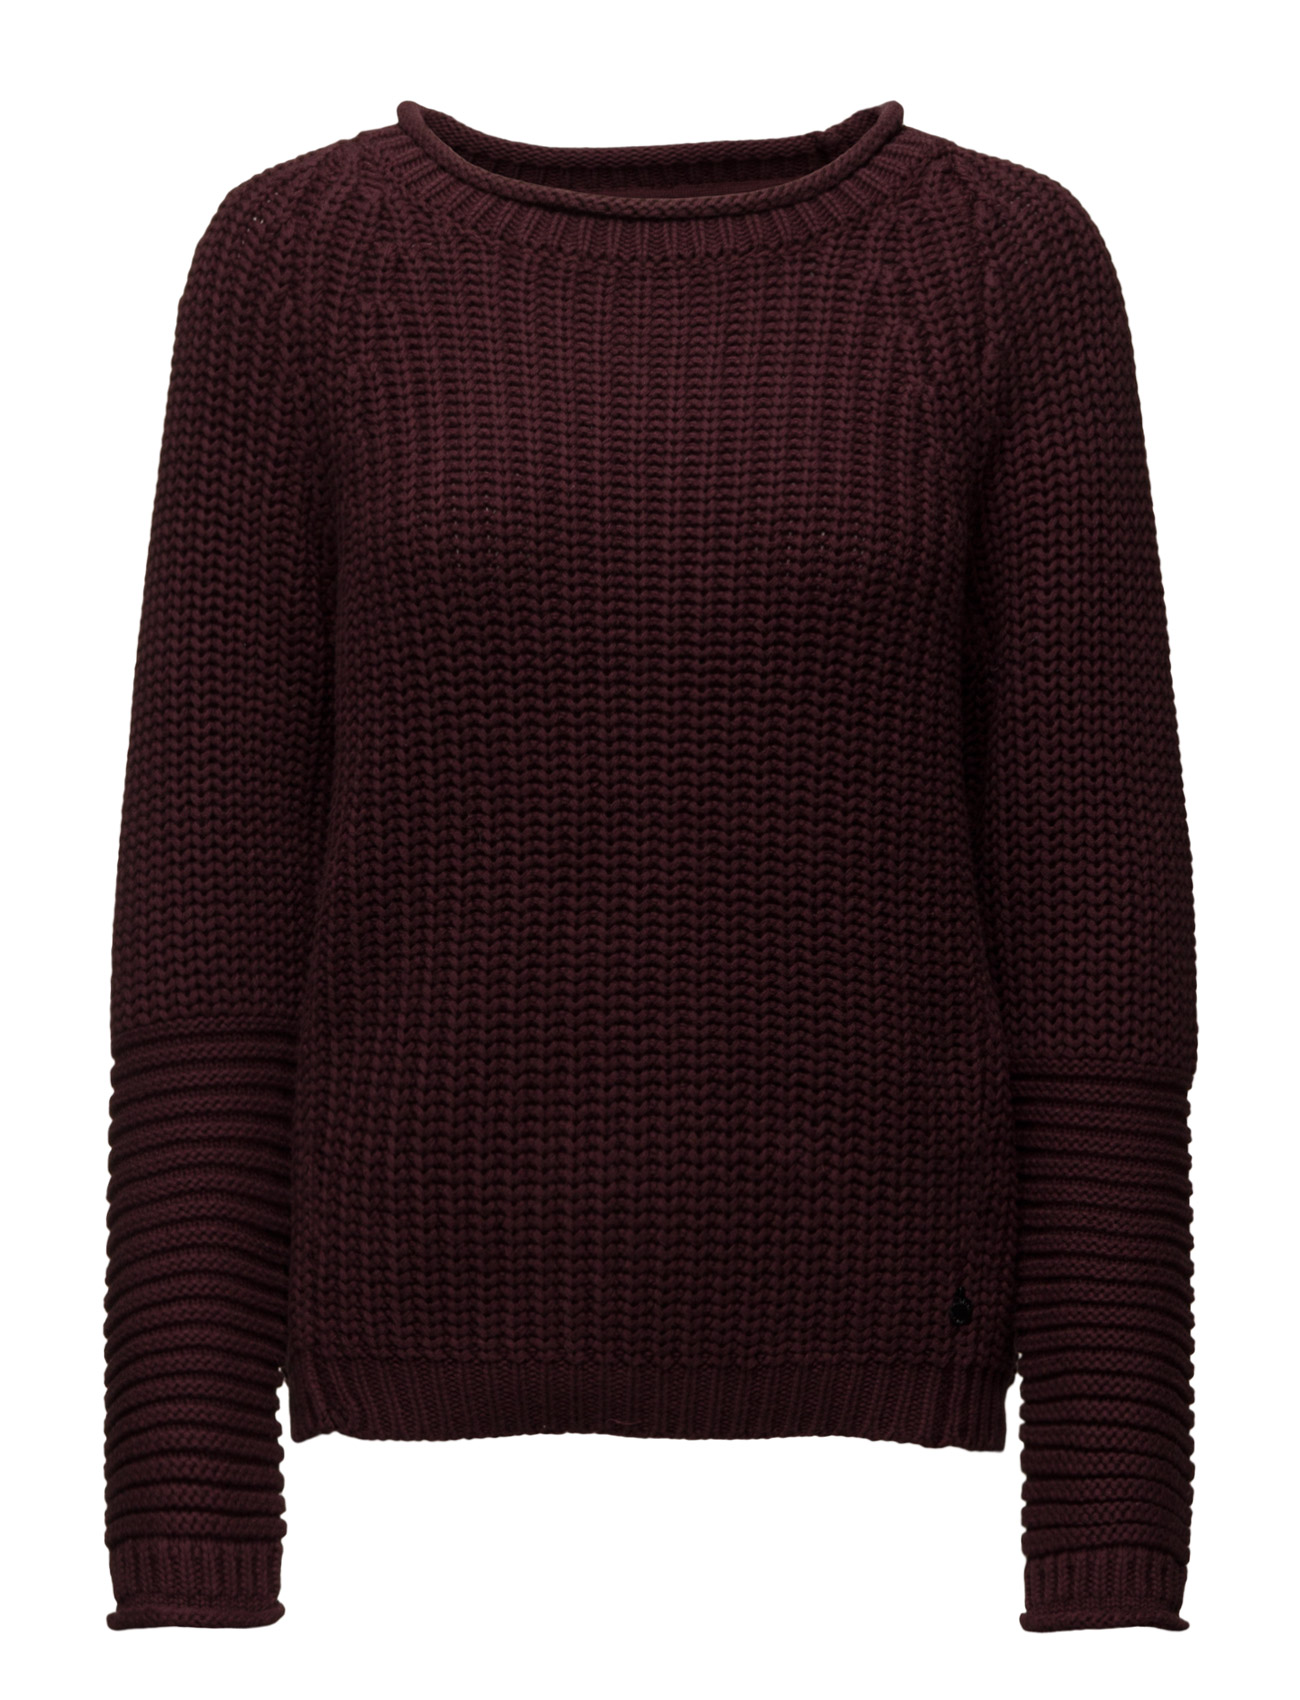 Basic Pull With Shaped Sleeves. Scotch & Soda Striktøj til Kvinder i Palm Brown 96